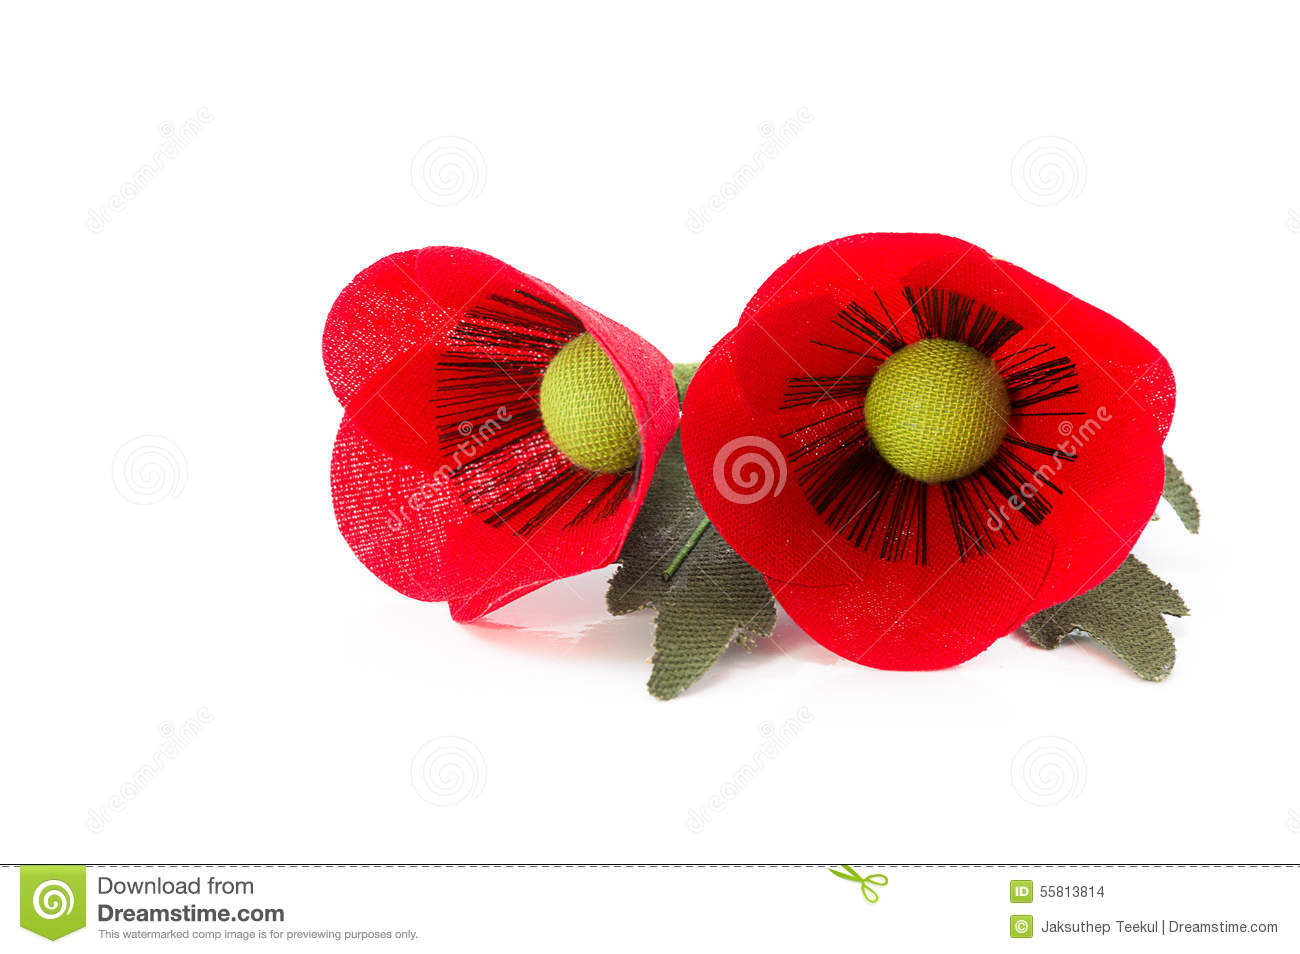 Two Fabric Poppies Flower Pin On White Background Stock Photo